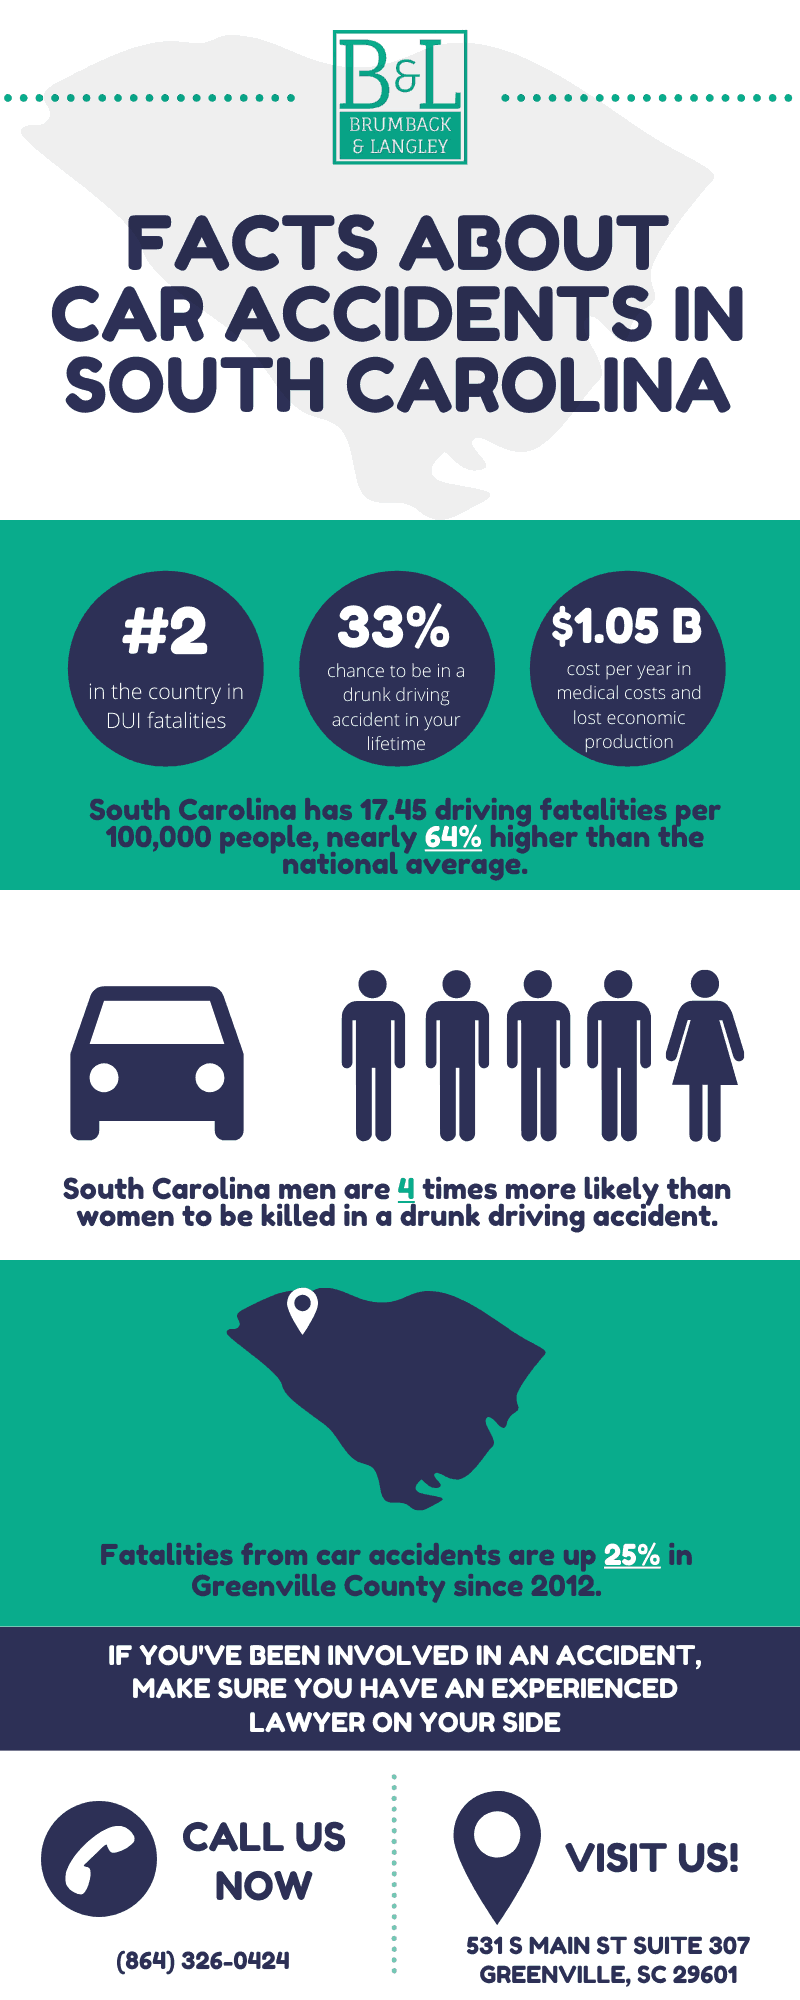 Facts About Car Accidents In Greenville South Carolina